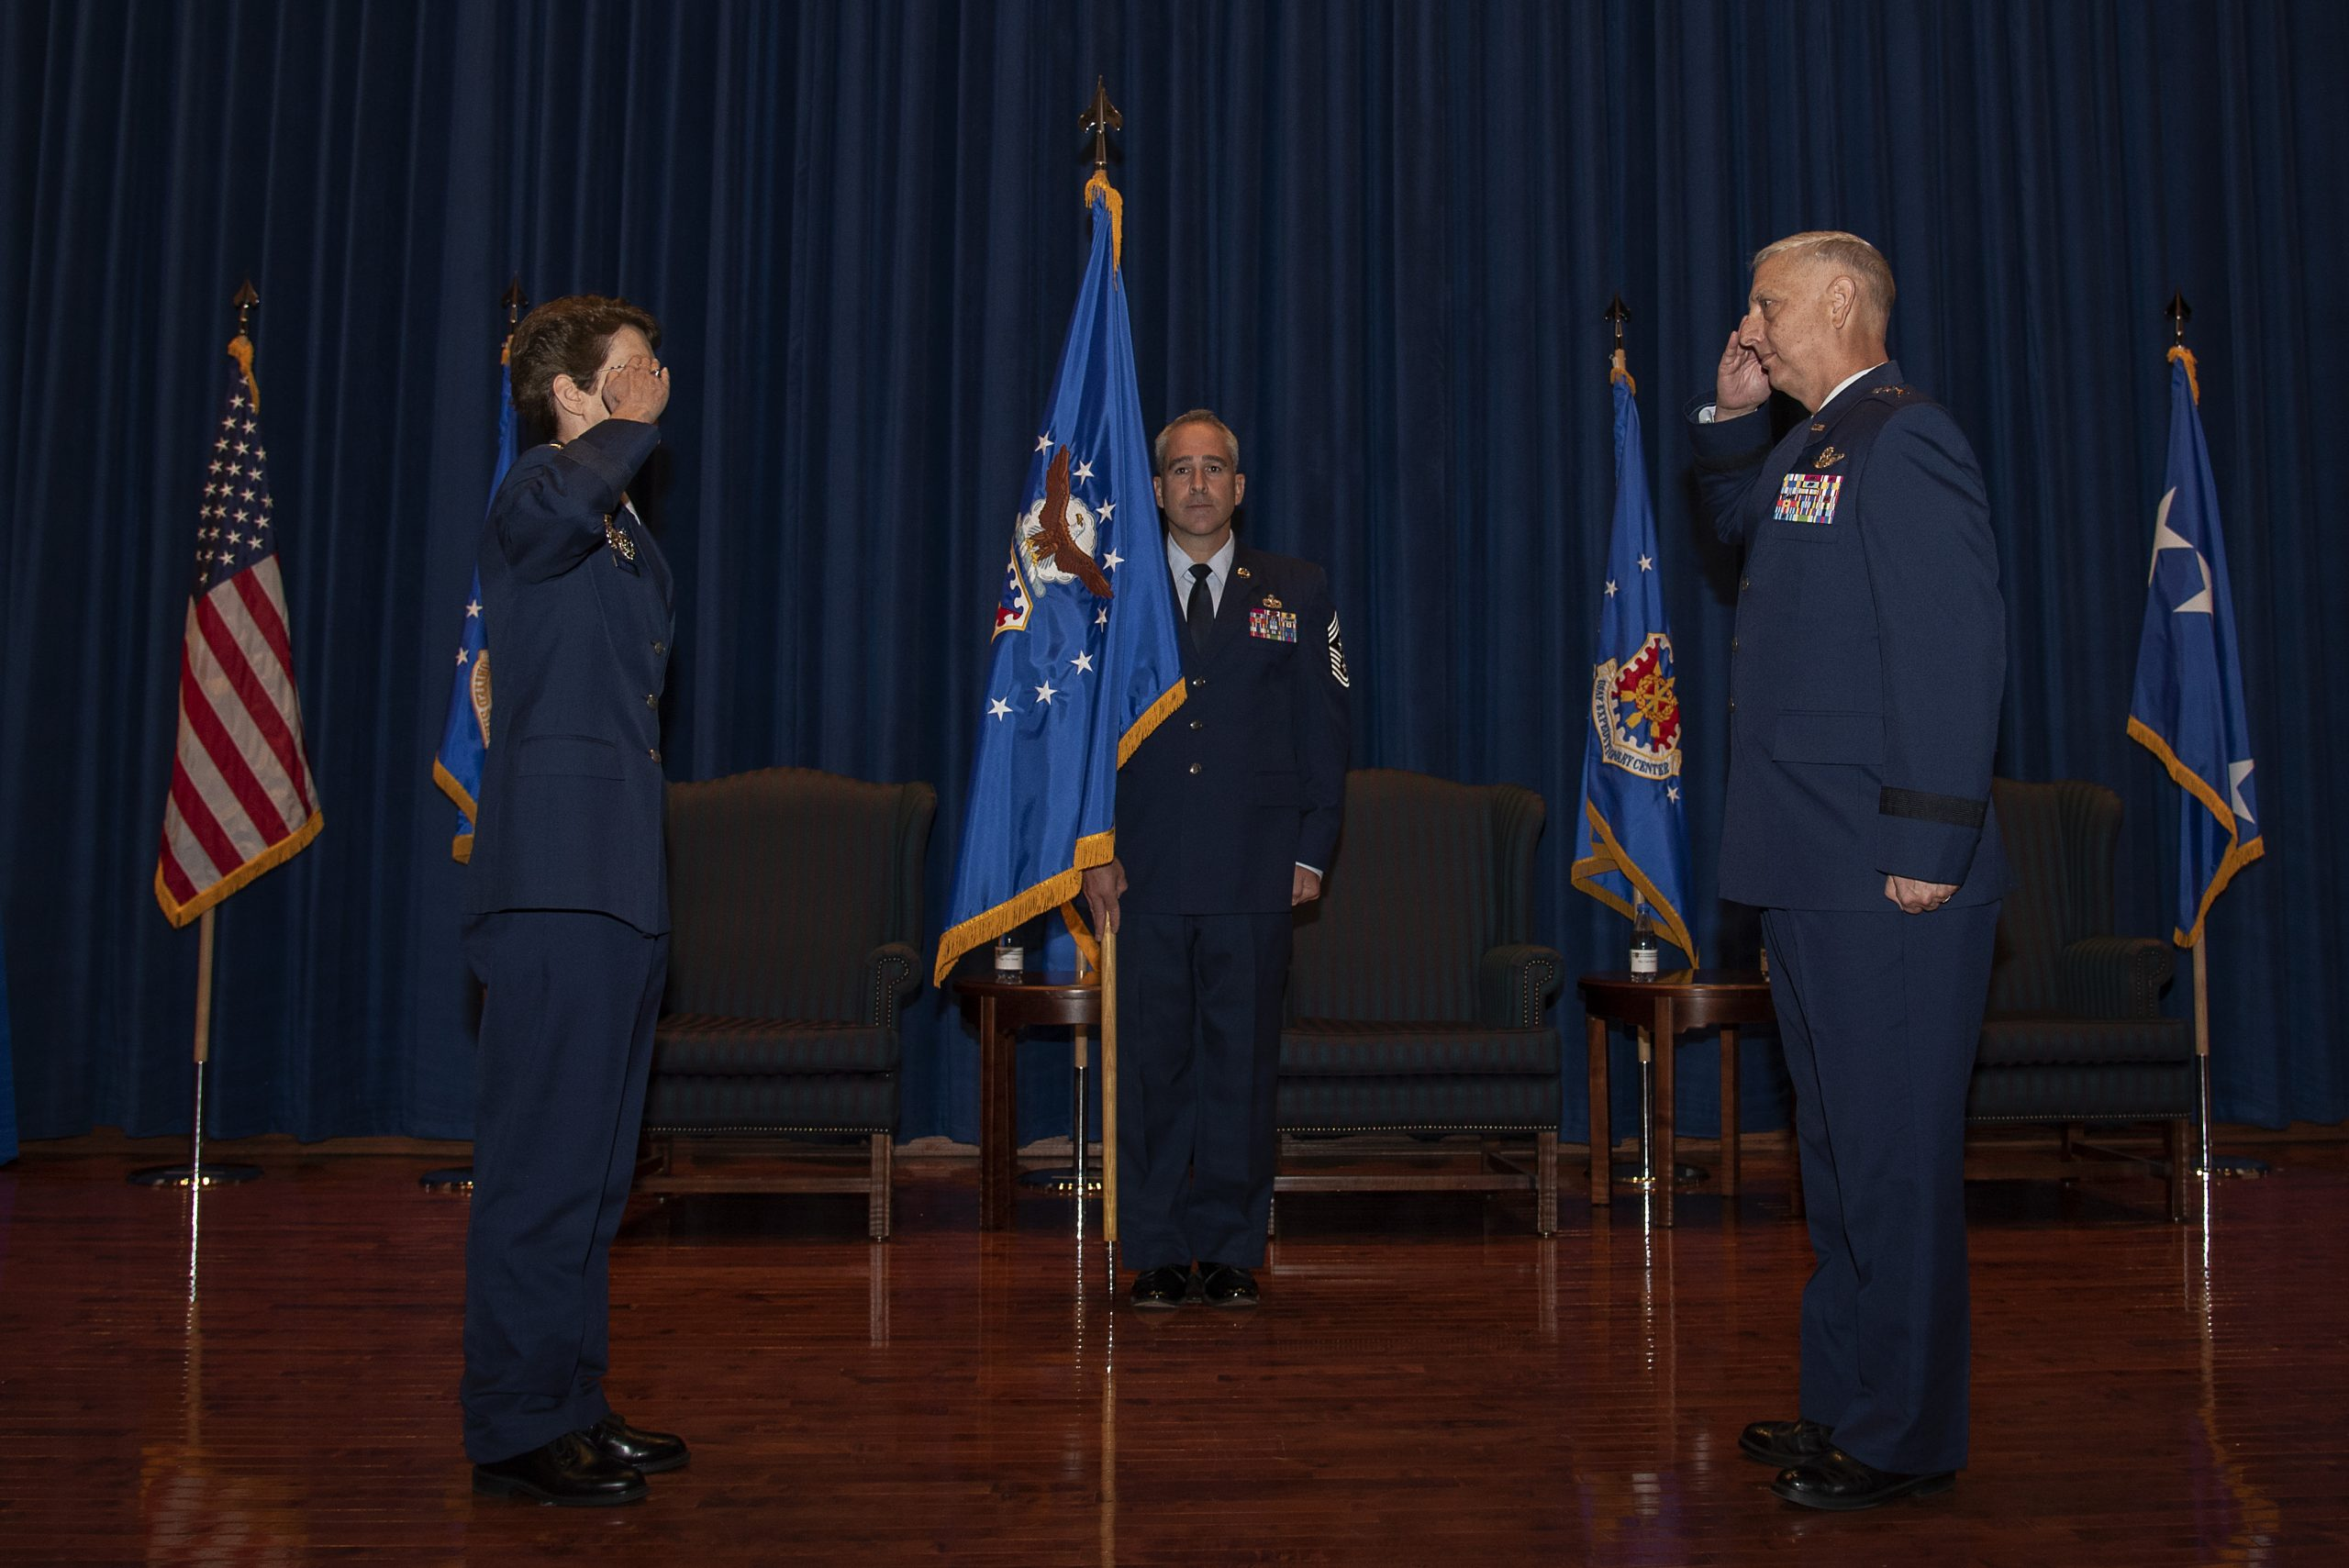 U.S. Air Force Maj. Gen. Mark Camerer assumes command of the U.S. Air Force Expeditionary Center during a change of command ceremony Sept. 23, 2020, at the USAF Expeditionary Center on Joint Base McGuire-Dix-Lakehurst, New Jersey. U.S. Air Force Gen. Jacqueline Van Ovost, Air Mobility Command commander, presided over the ceremony where U.S. Air Force Maj. Gen. John Gordy relinquished command of the USAF Expeditionary Center to Camerer. (U.S. Air Force photo by Master Sgt. Ashley Hyatt)